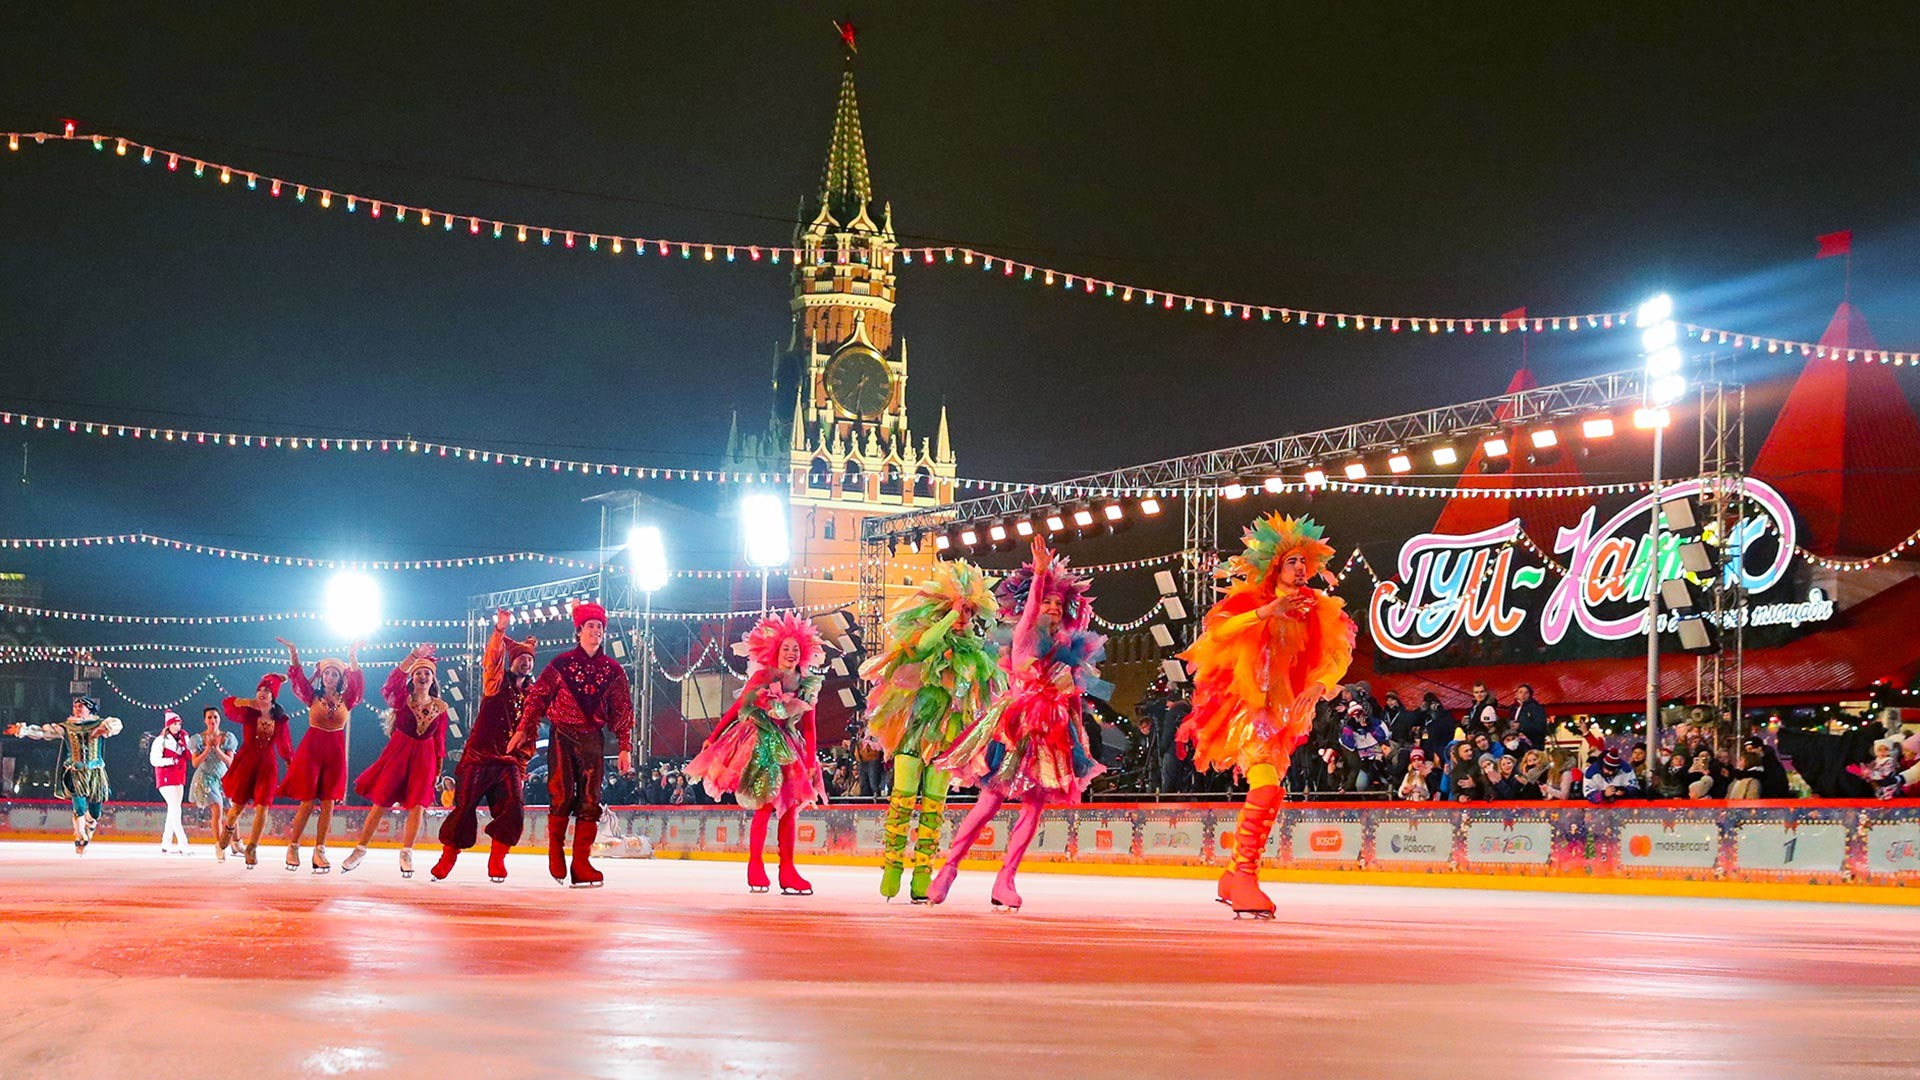 GUM-ice rink on the Red Square.